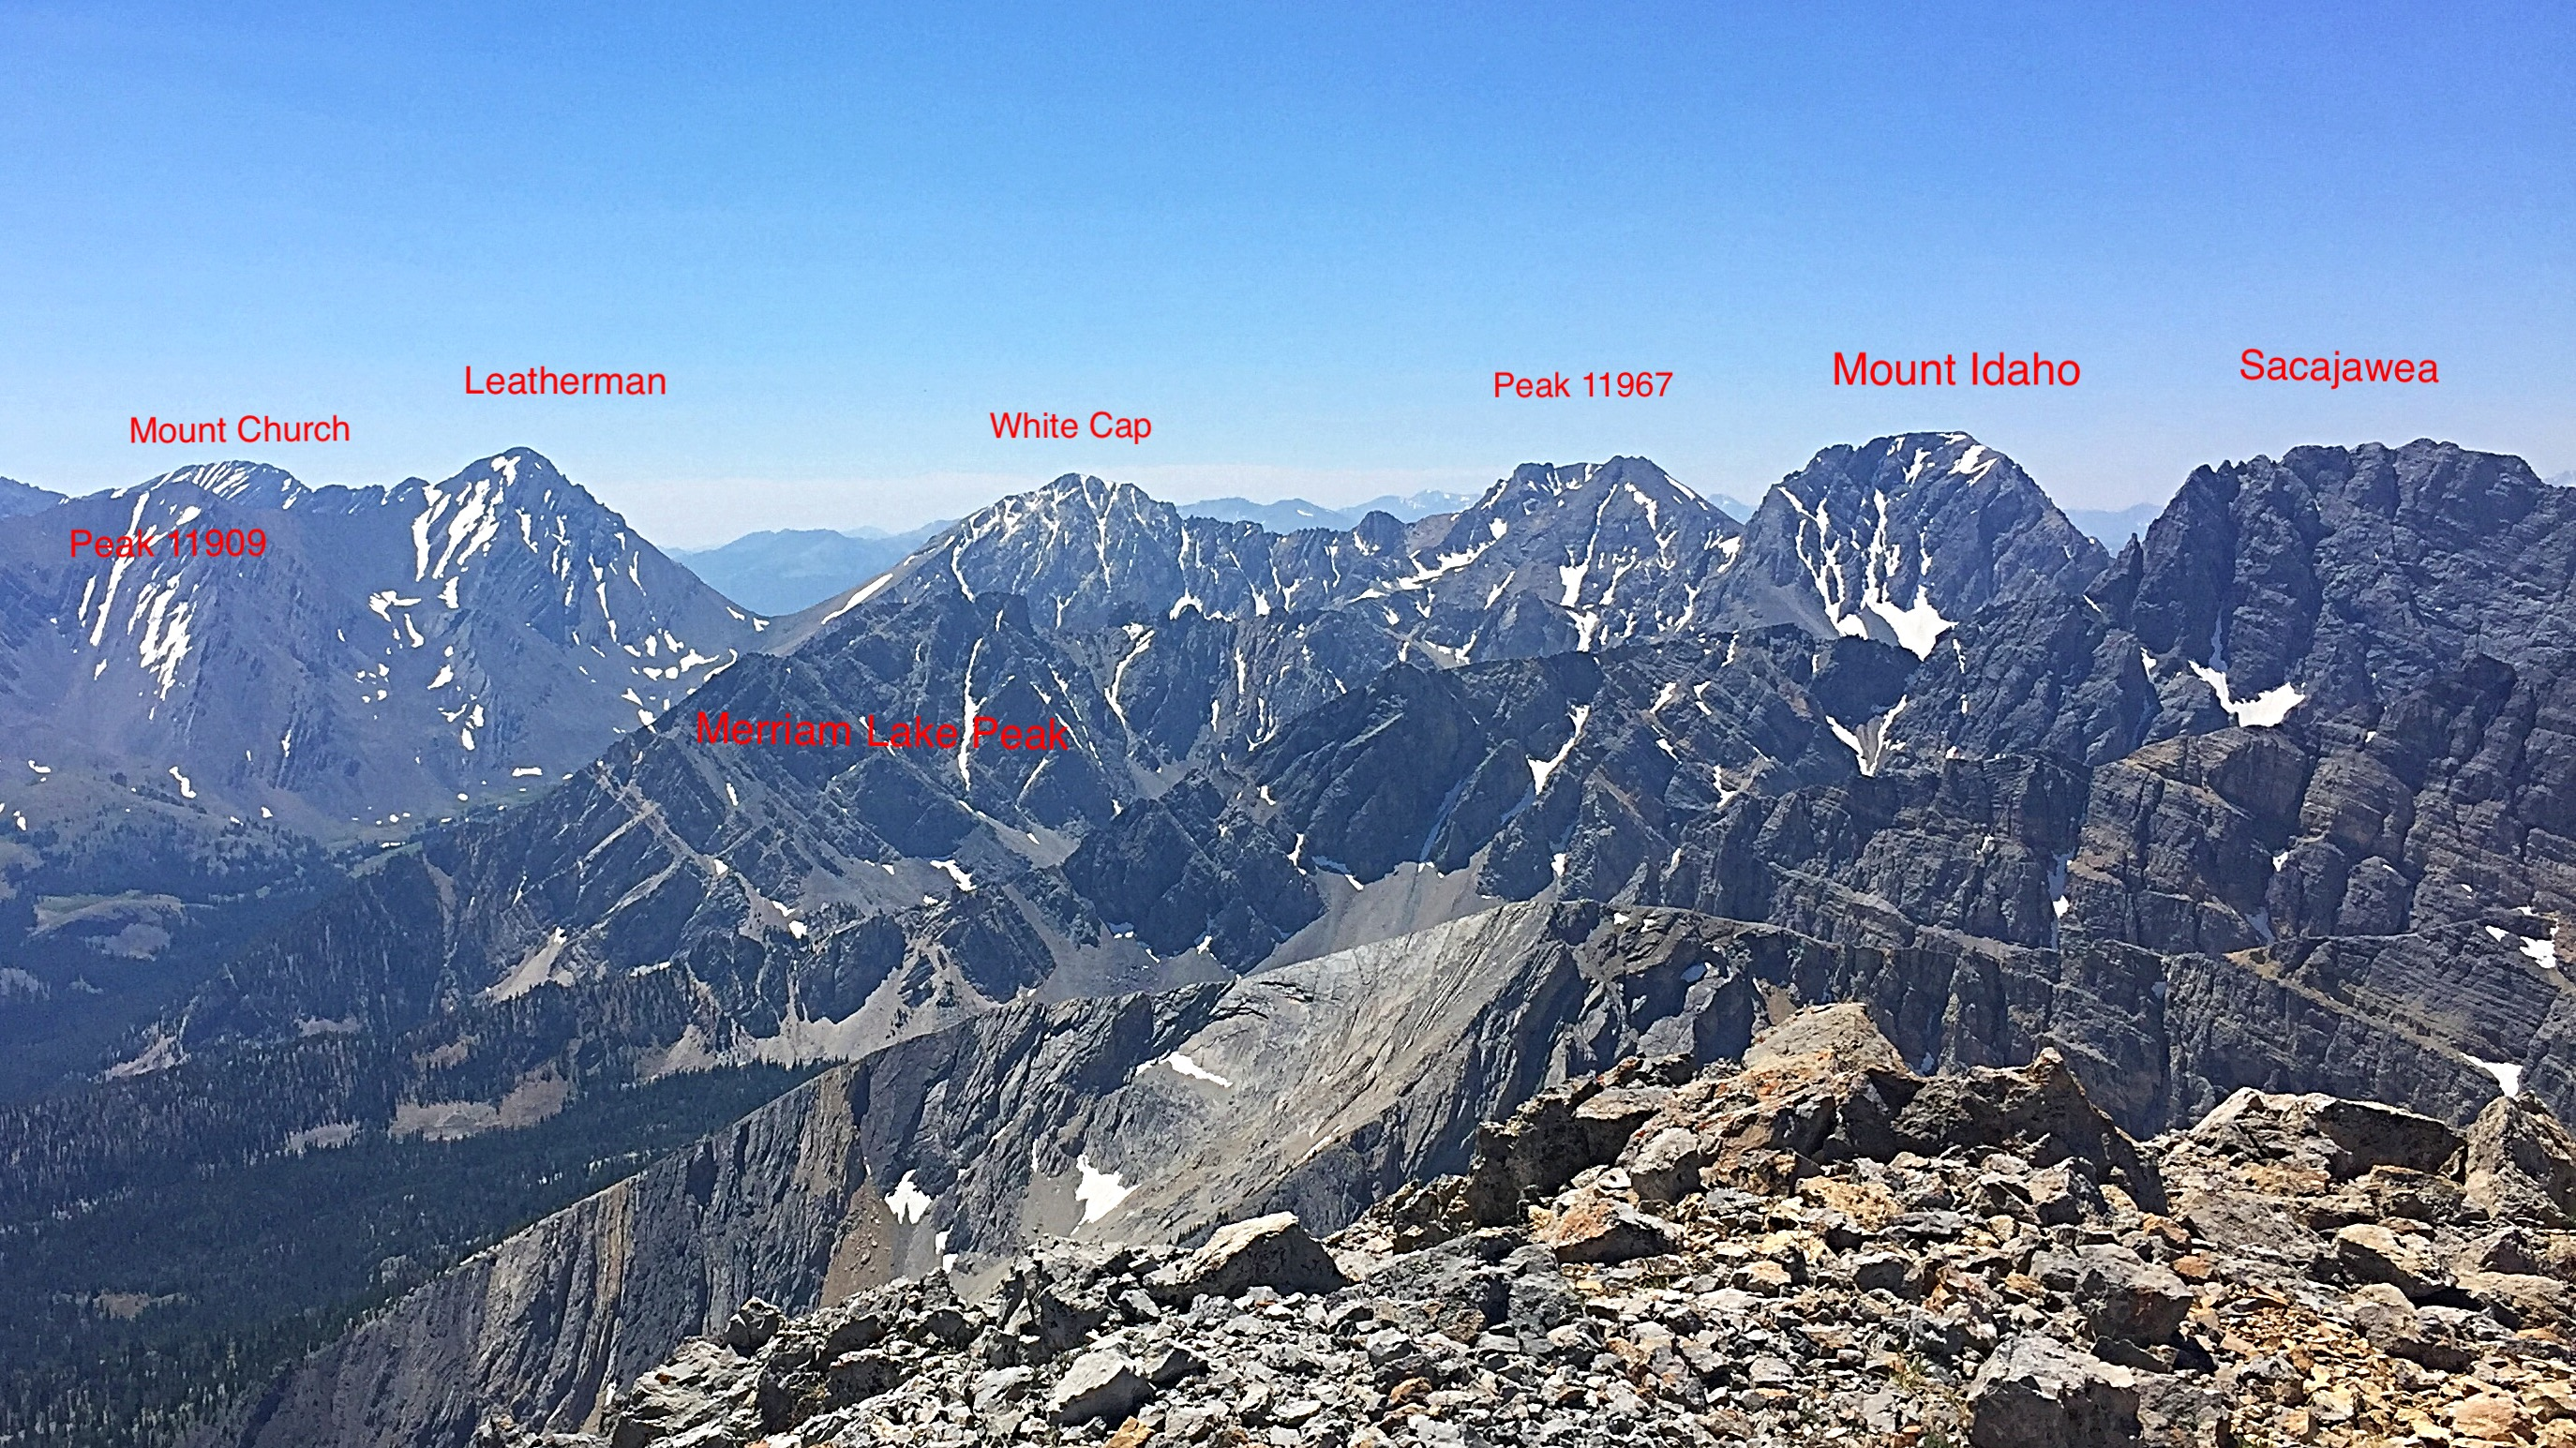 The main Lost,River Range crest viewed from Mountaineers Peak.